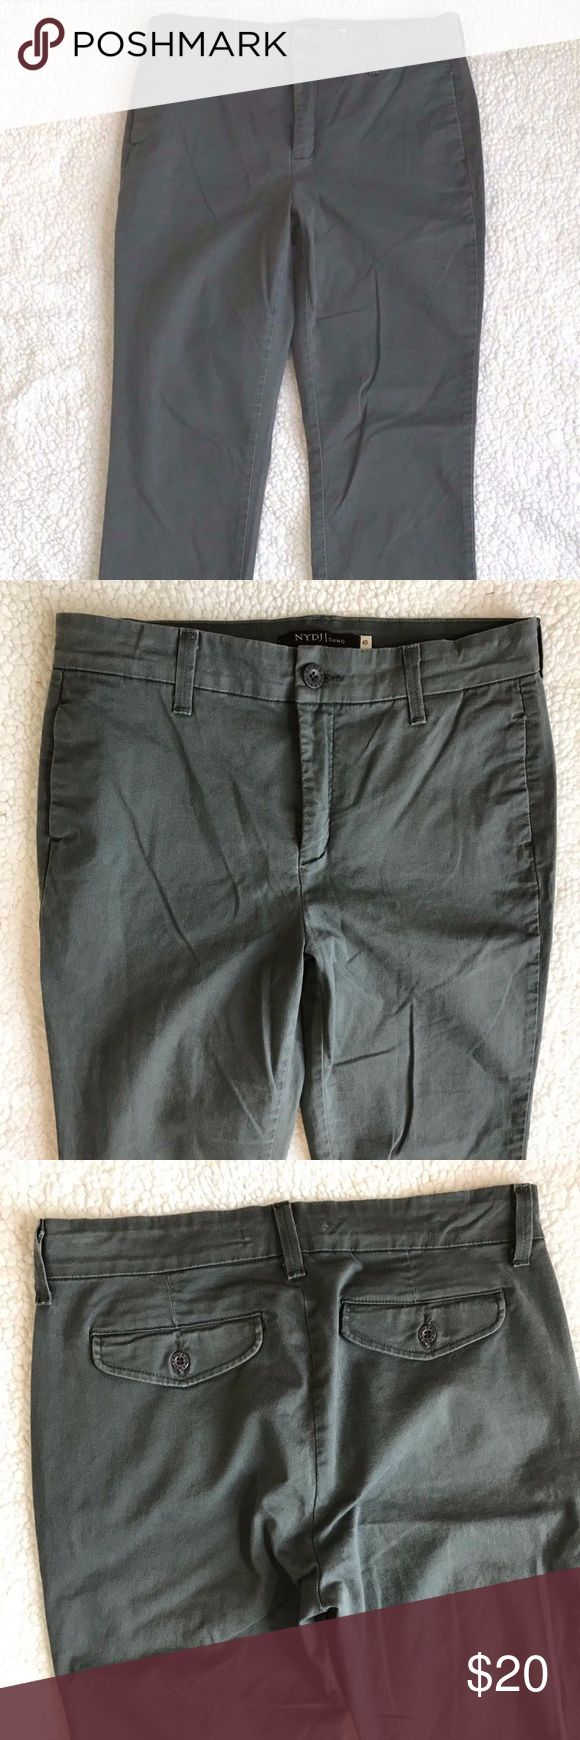 """NYDJ Chino Women's Pants Size 6 NYDJ Not your Daughters Jeans Chino Women's Pants Size 6 Tech Green Straight Leg Lift / Tuck. Back Pockets. Side Pockets. No Rips, Stains or holes. Smoke Free Home. Fabric: 97% Cotton / 3% Spandex Approximate measurements:  Rise: 10"""" inches  Inseam: 30.5"""" inches Waist: 30"""" inches NYDJ Pants"""